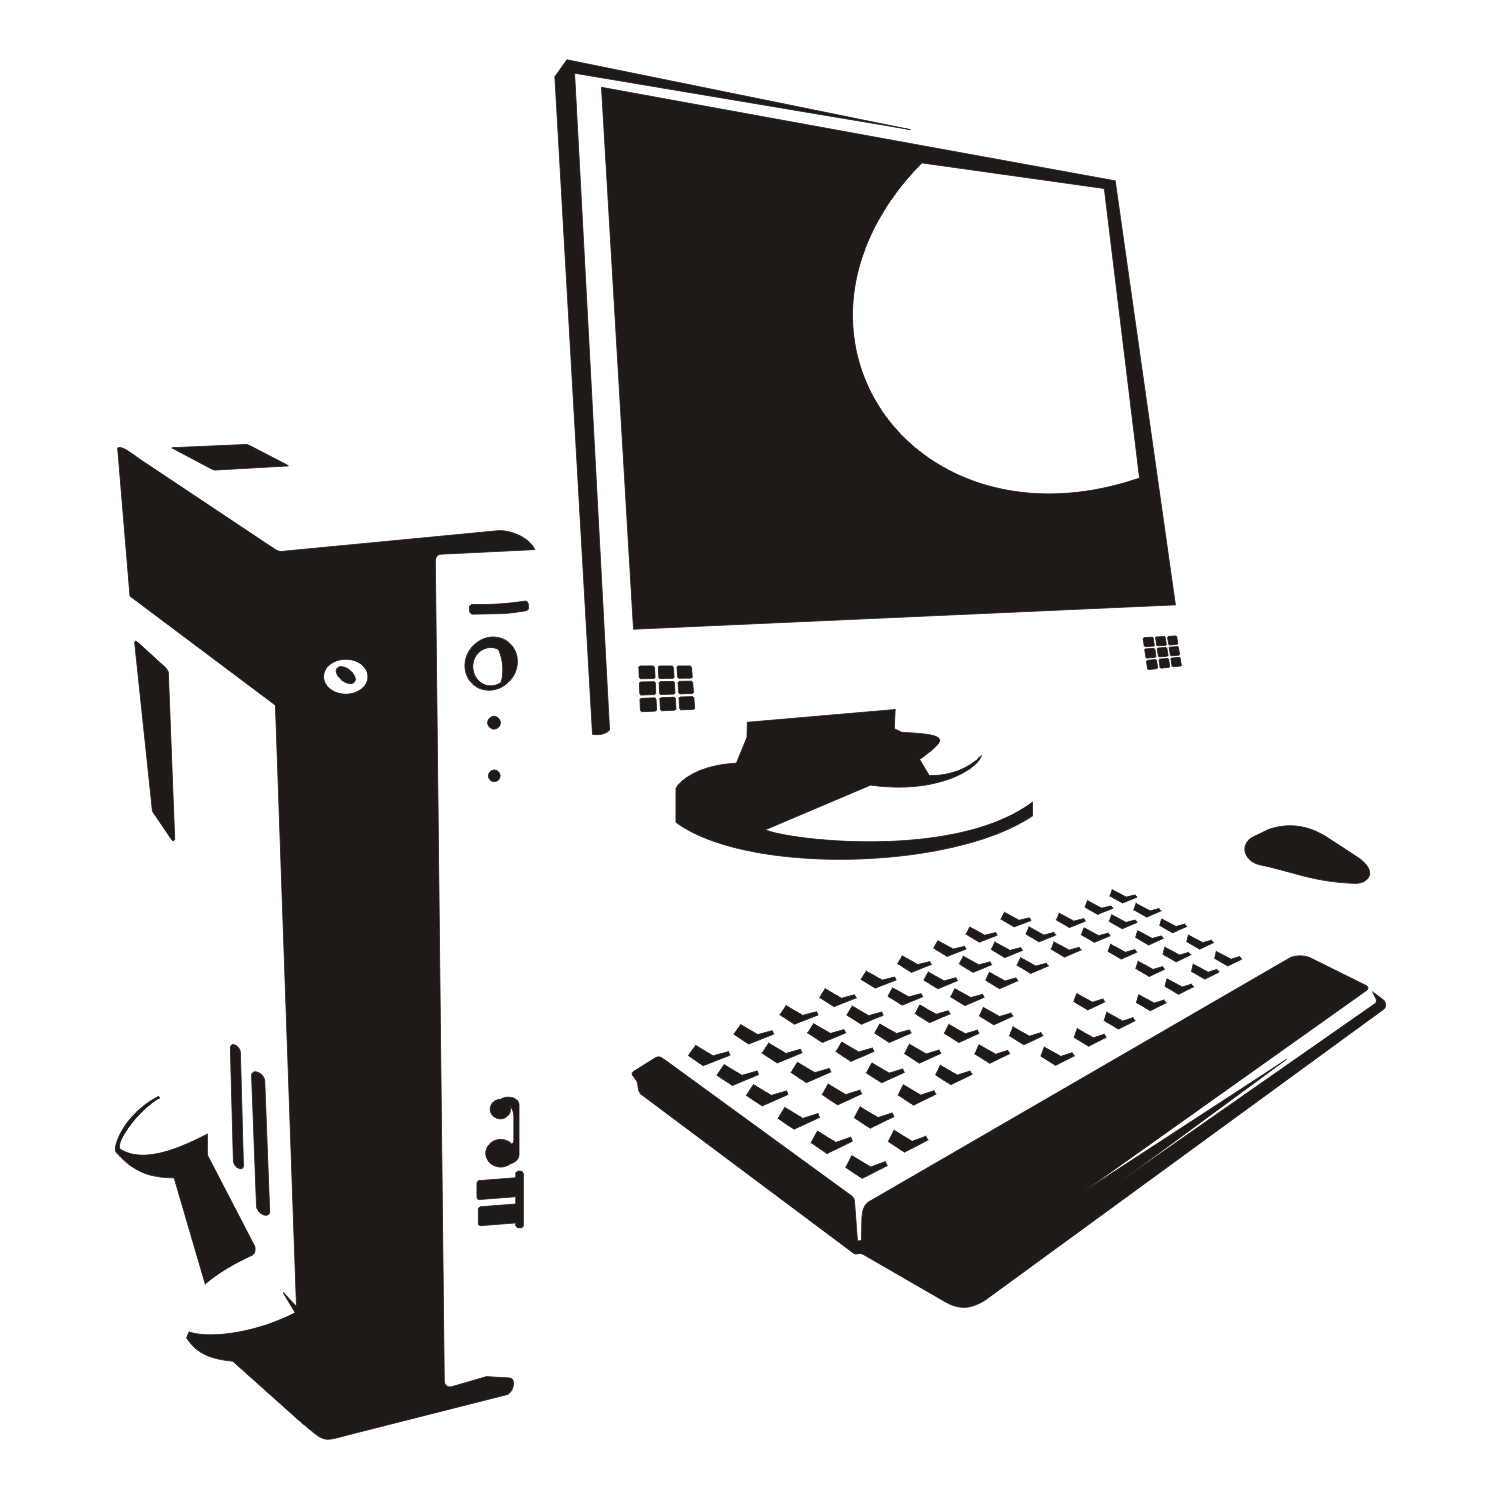 Computer silhouette. Vector illustration.